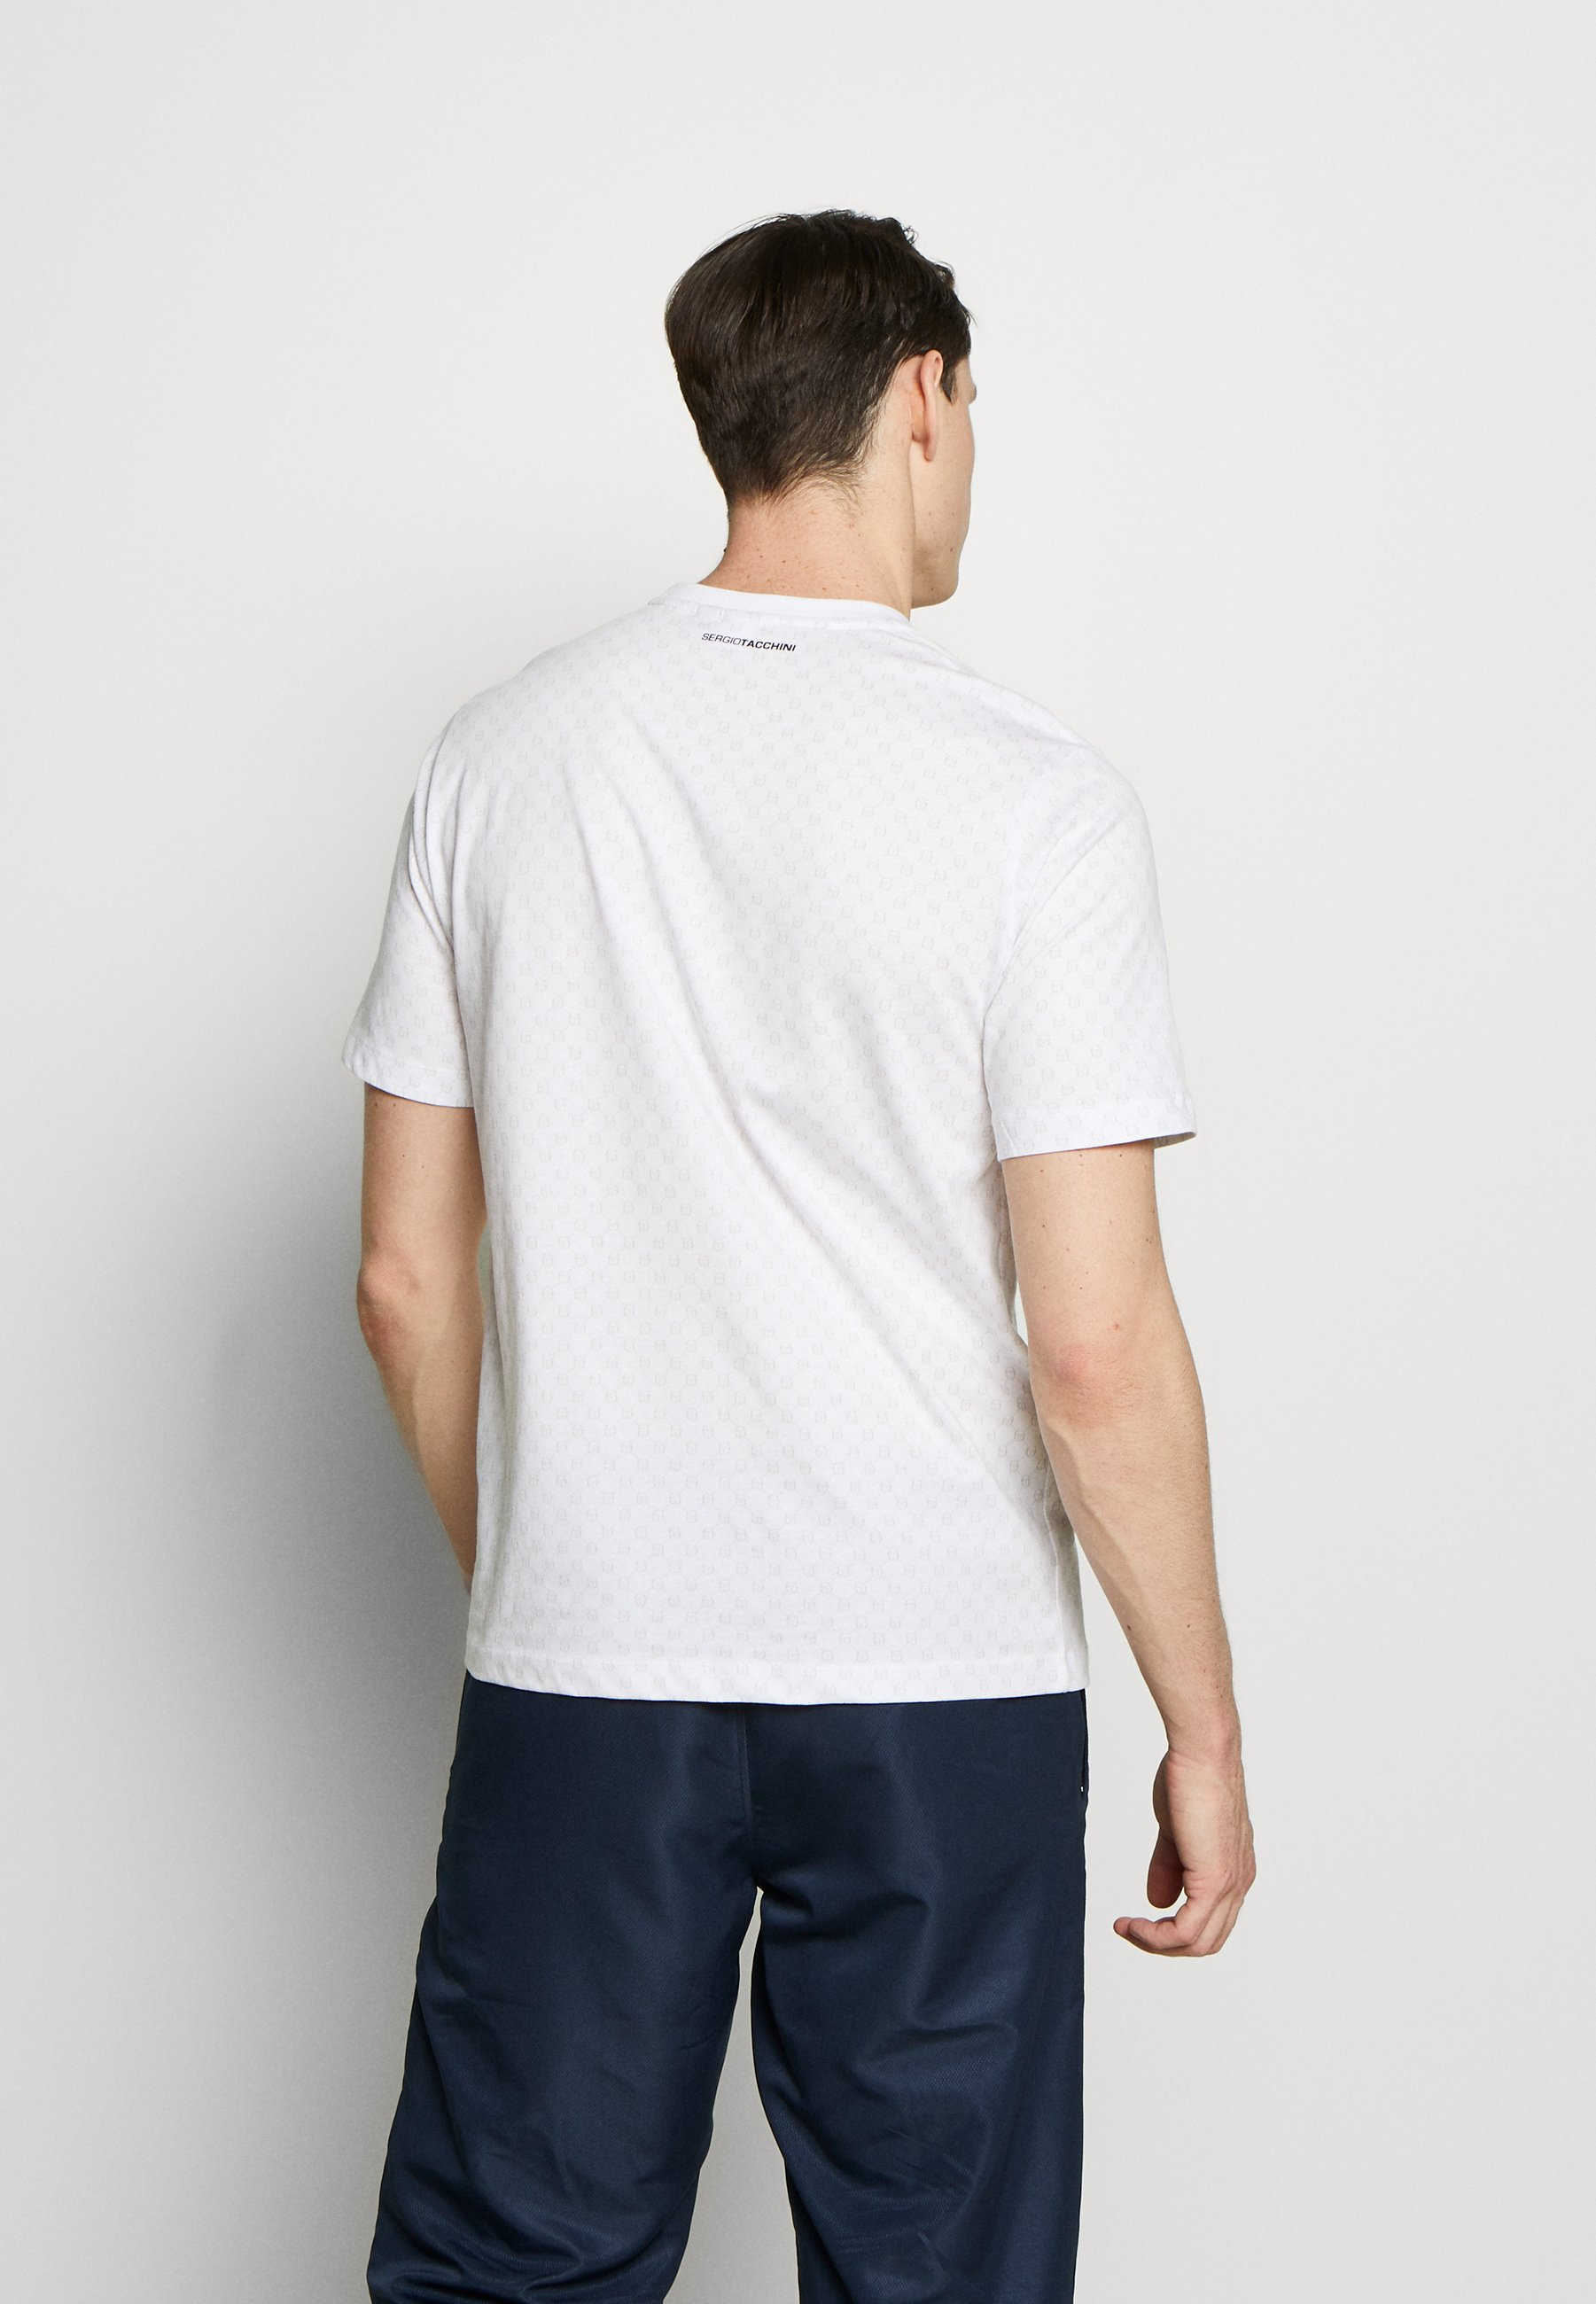 sergio tacchini DIN T-SHIRT - T-shirt con stampa - white/navy